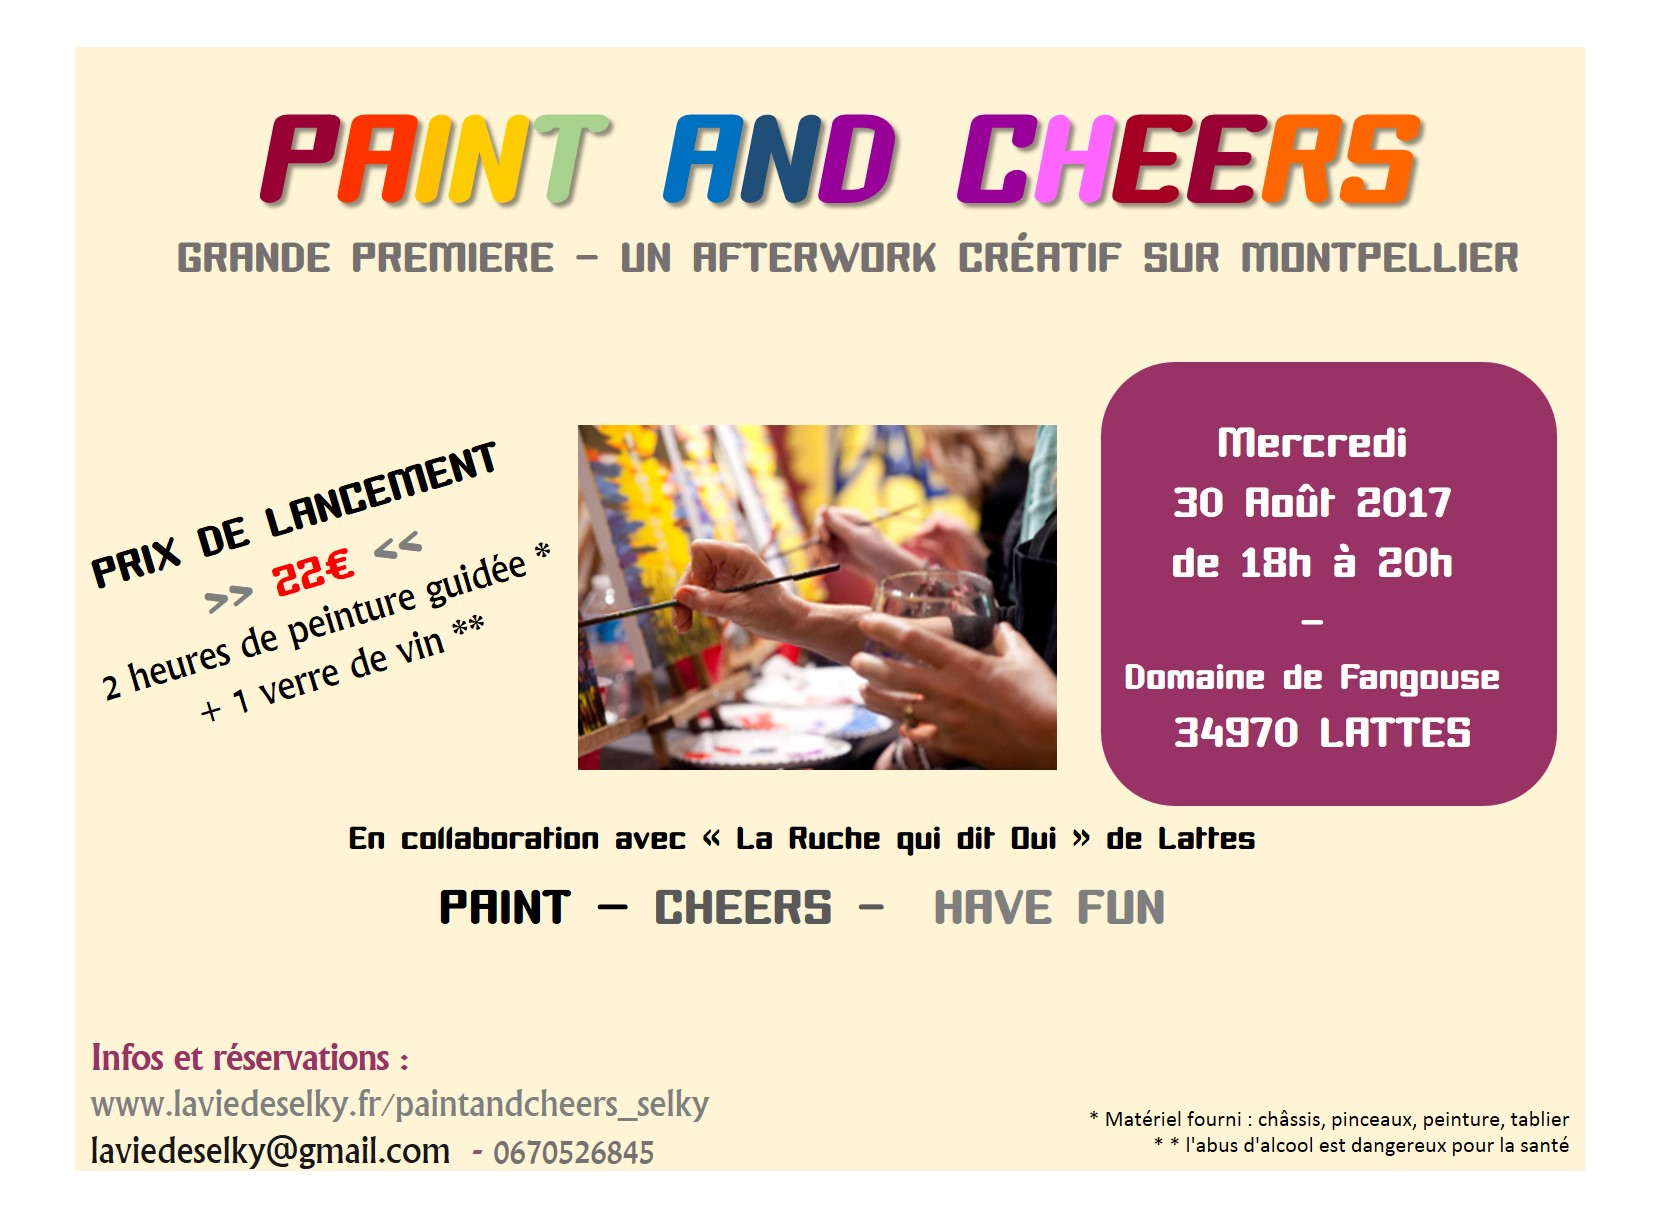 SOIREE PAINT AND CHEERS